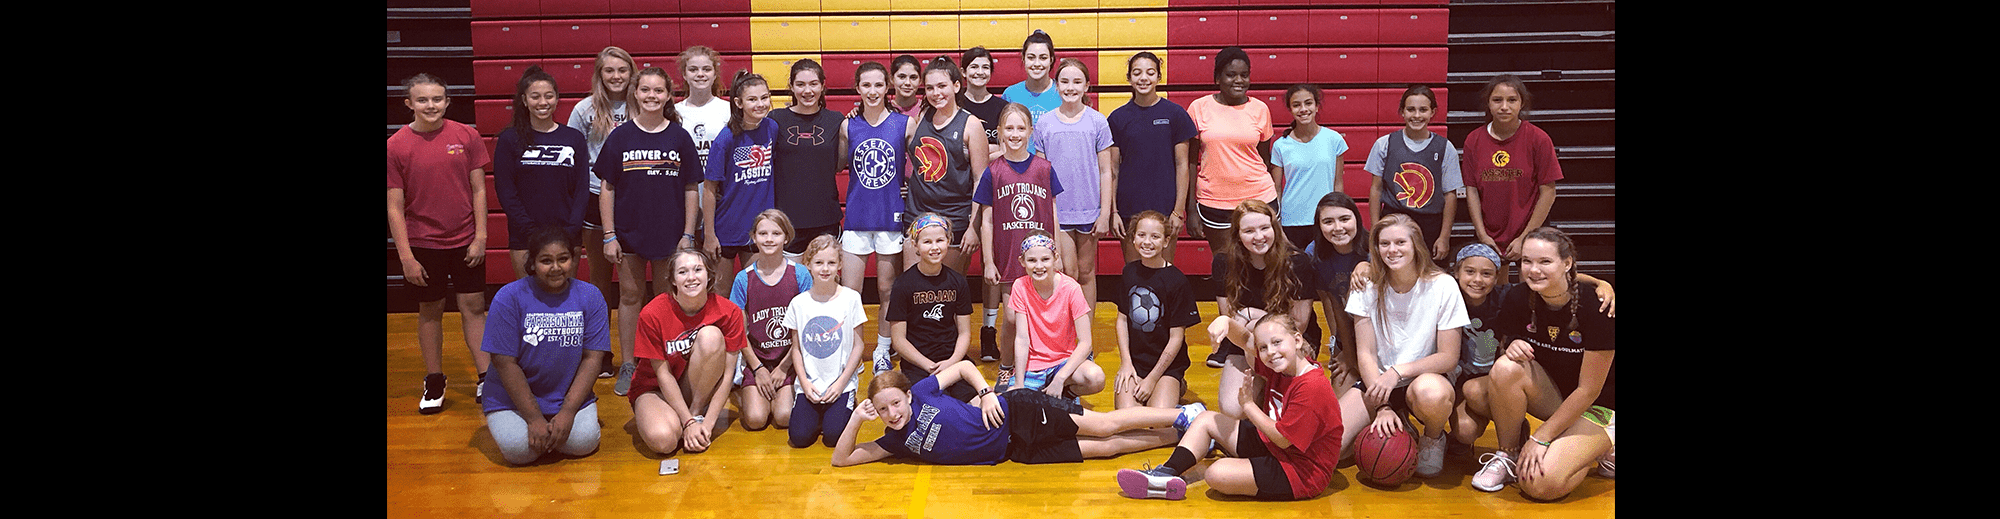 Basketball camp members pose together in a gym